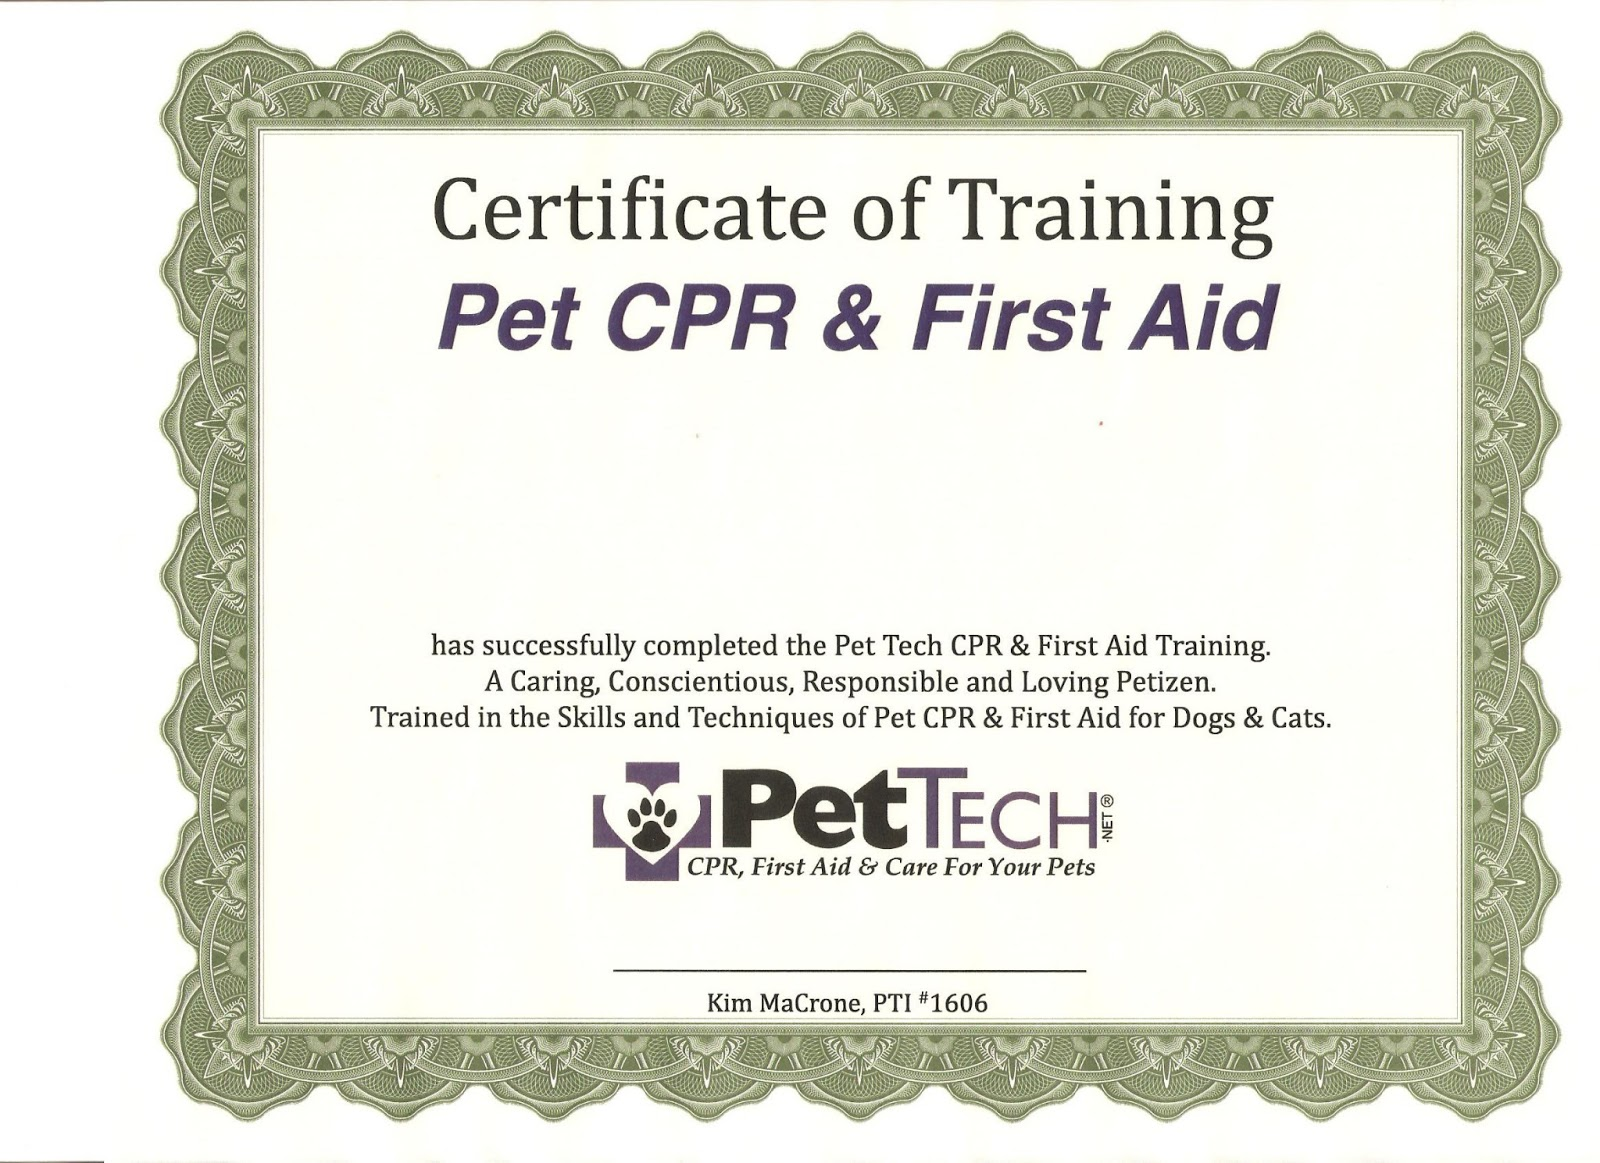 Cloud 9 pet sitting featured pet expert of the month we are better businaess bureau a rated insured bonded and i am pet cpr certified with employees getting their pet cpr certification as well xflitez Images